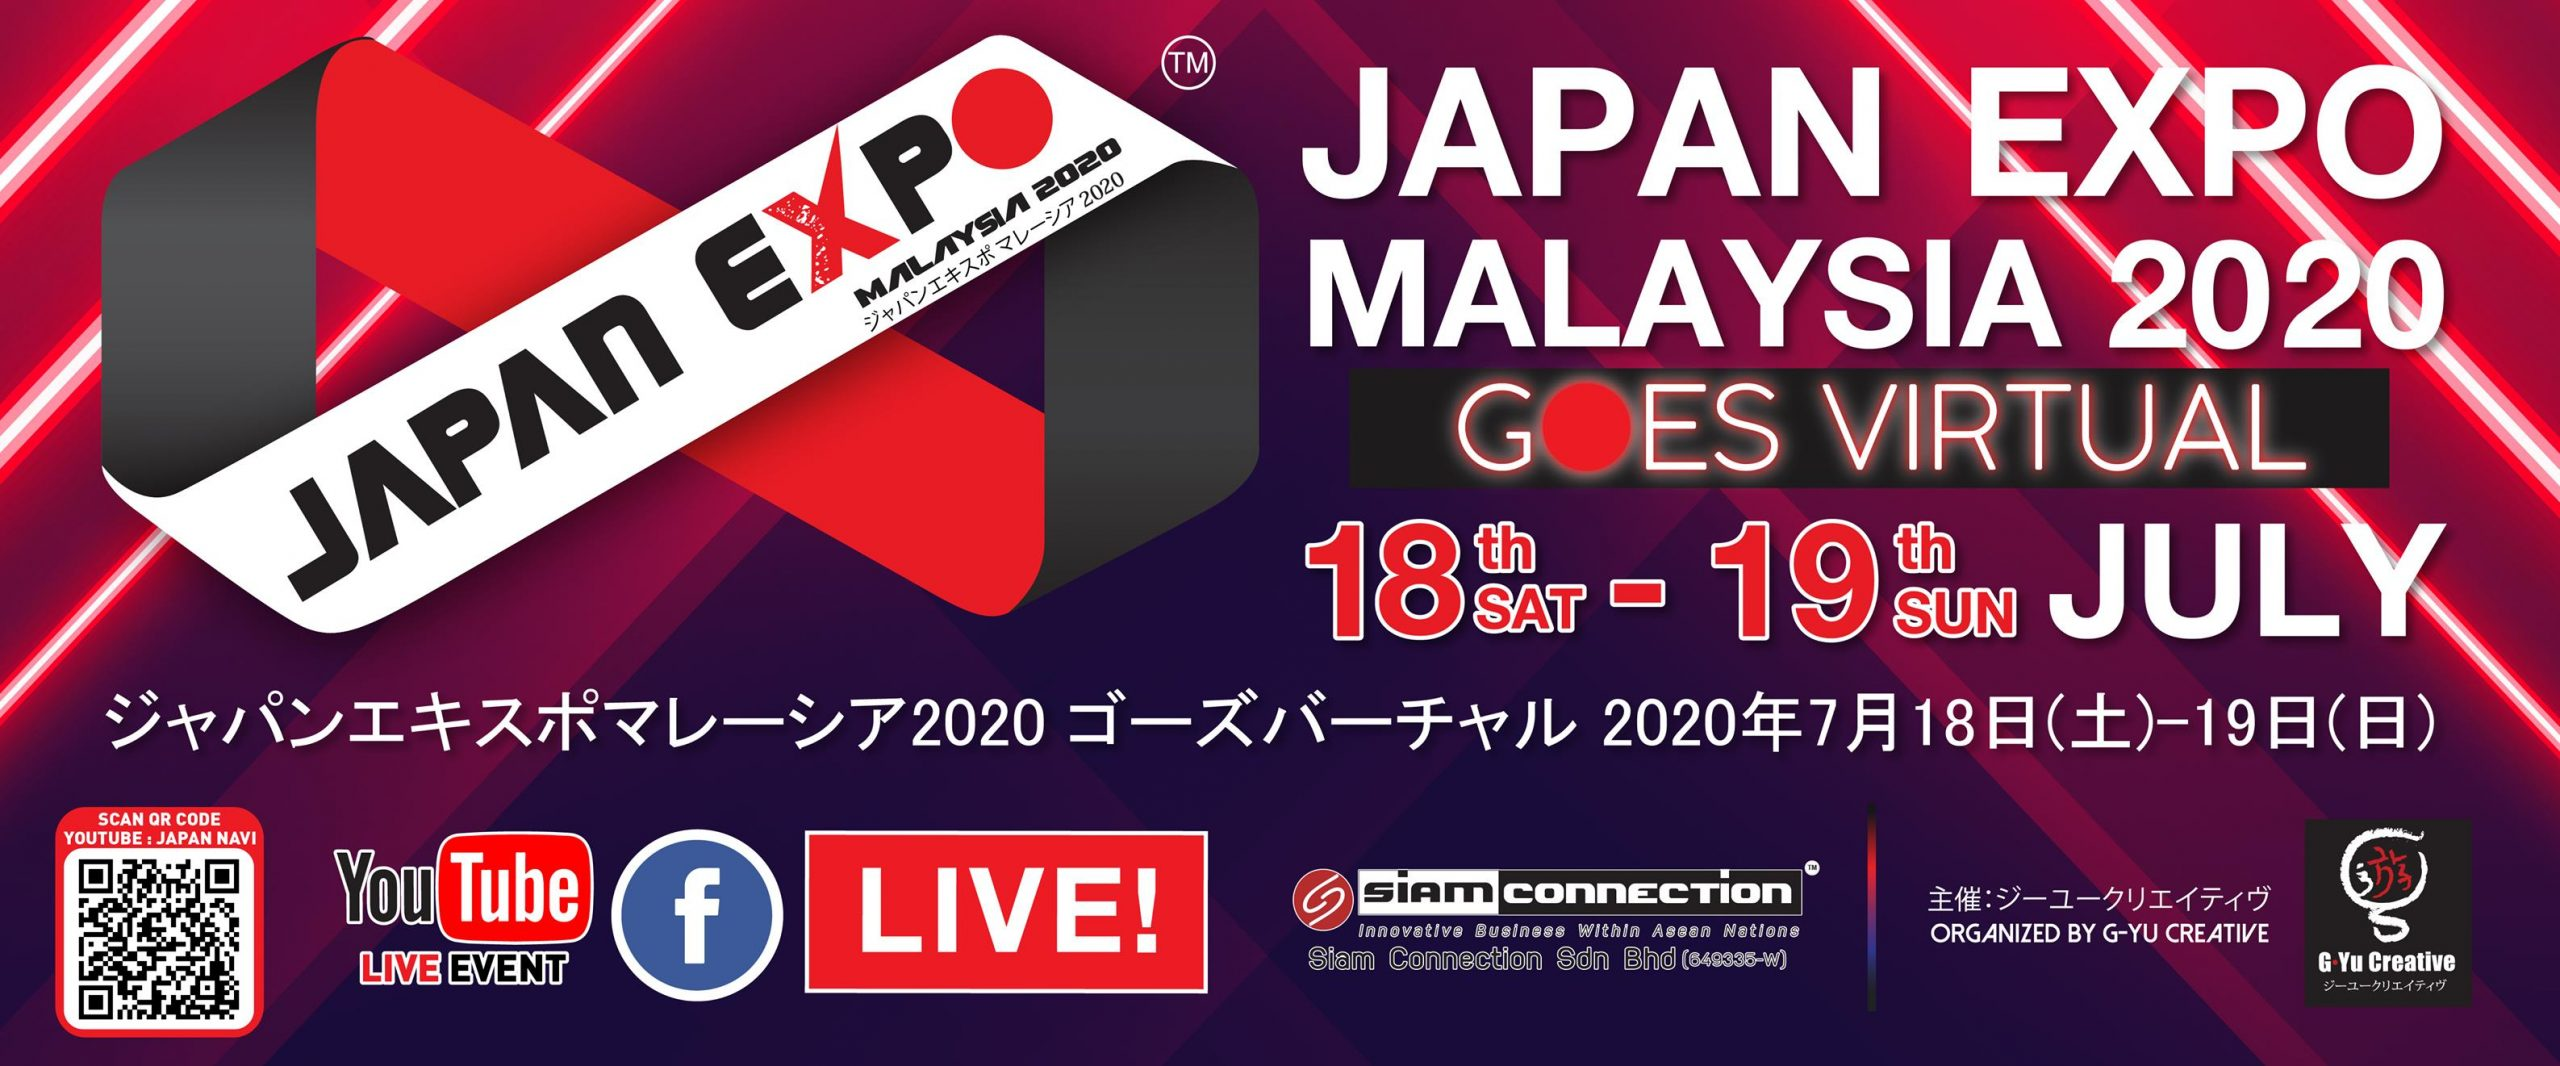 [2020/07/18-19] JAPAN EXPO MALAYSIA 2020 GOES VIRTUAL